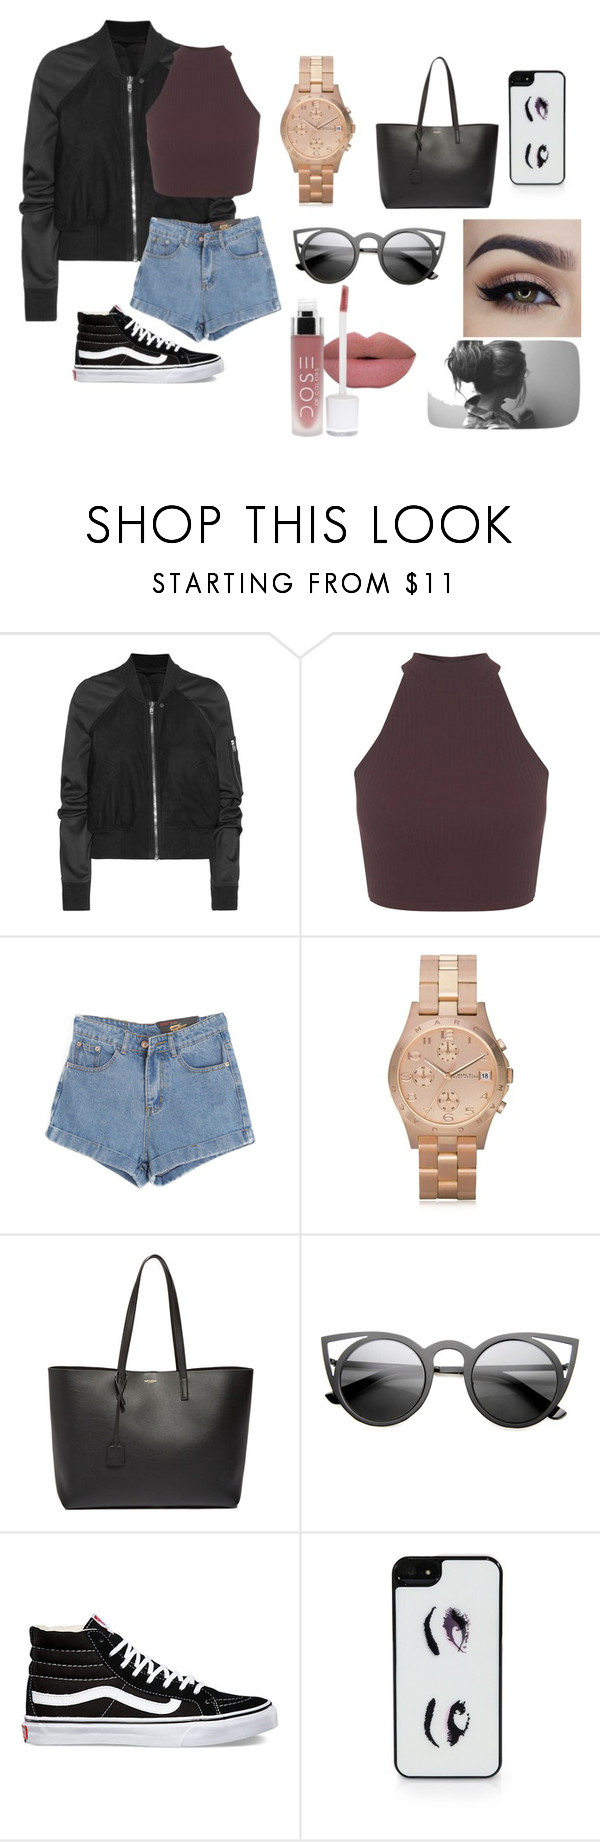 """""""Untitled #78"""" by thats0jai on Polyvore featuring Rick Owens, Miss Selfridge, Chicnova Fashion, Marc by Marc Jacobs, Yves Saint Laurent, Vans, Kate Spade, women's clothing, women and female"""